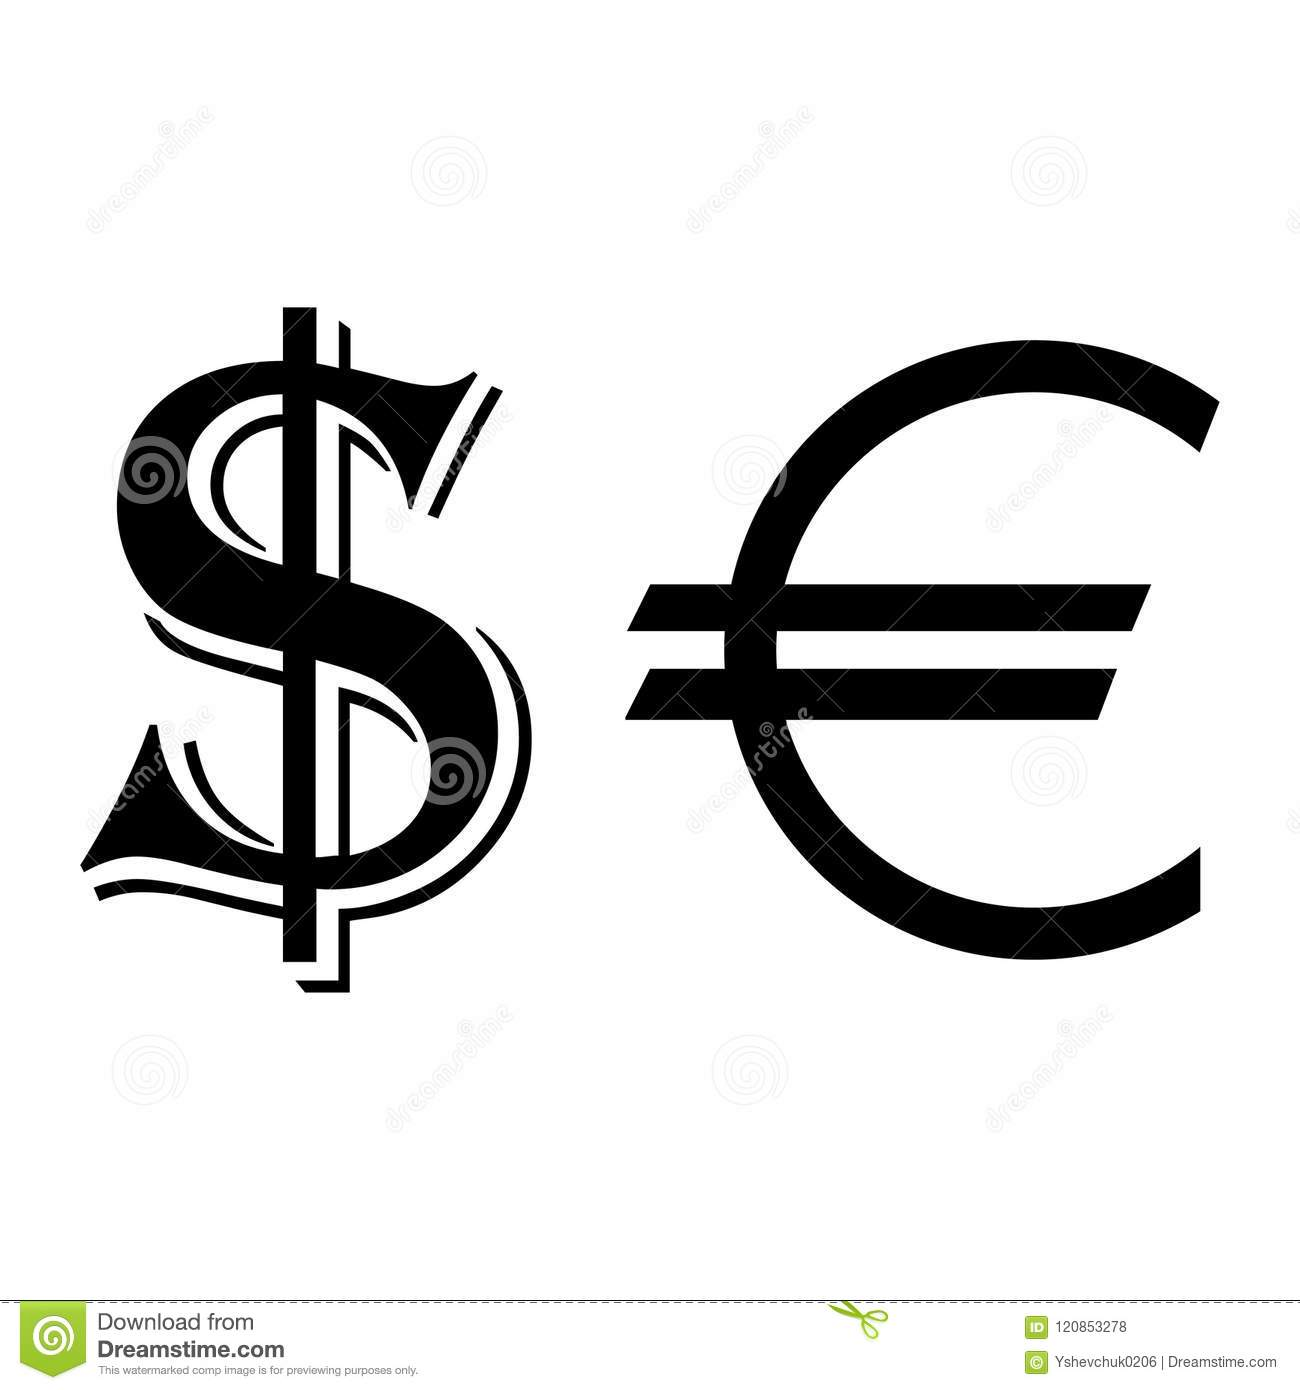 Currency Dollar And Euro Symbols Vector Illustration Stock Vector